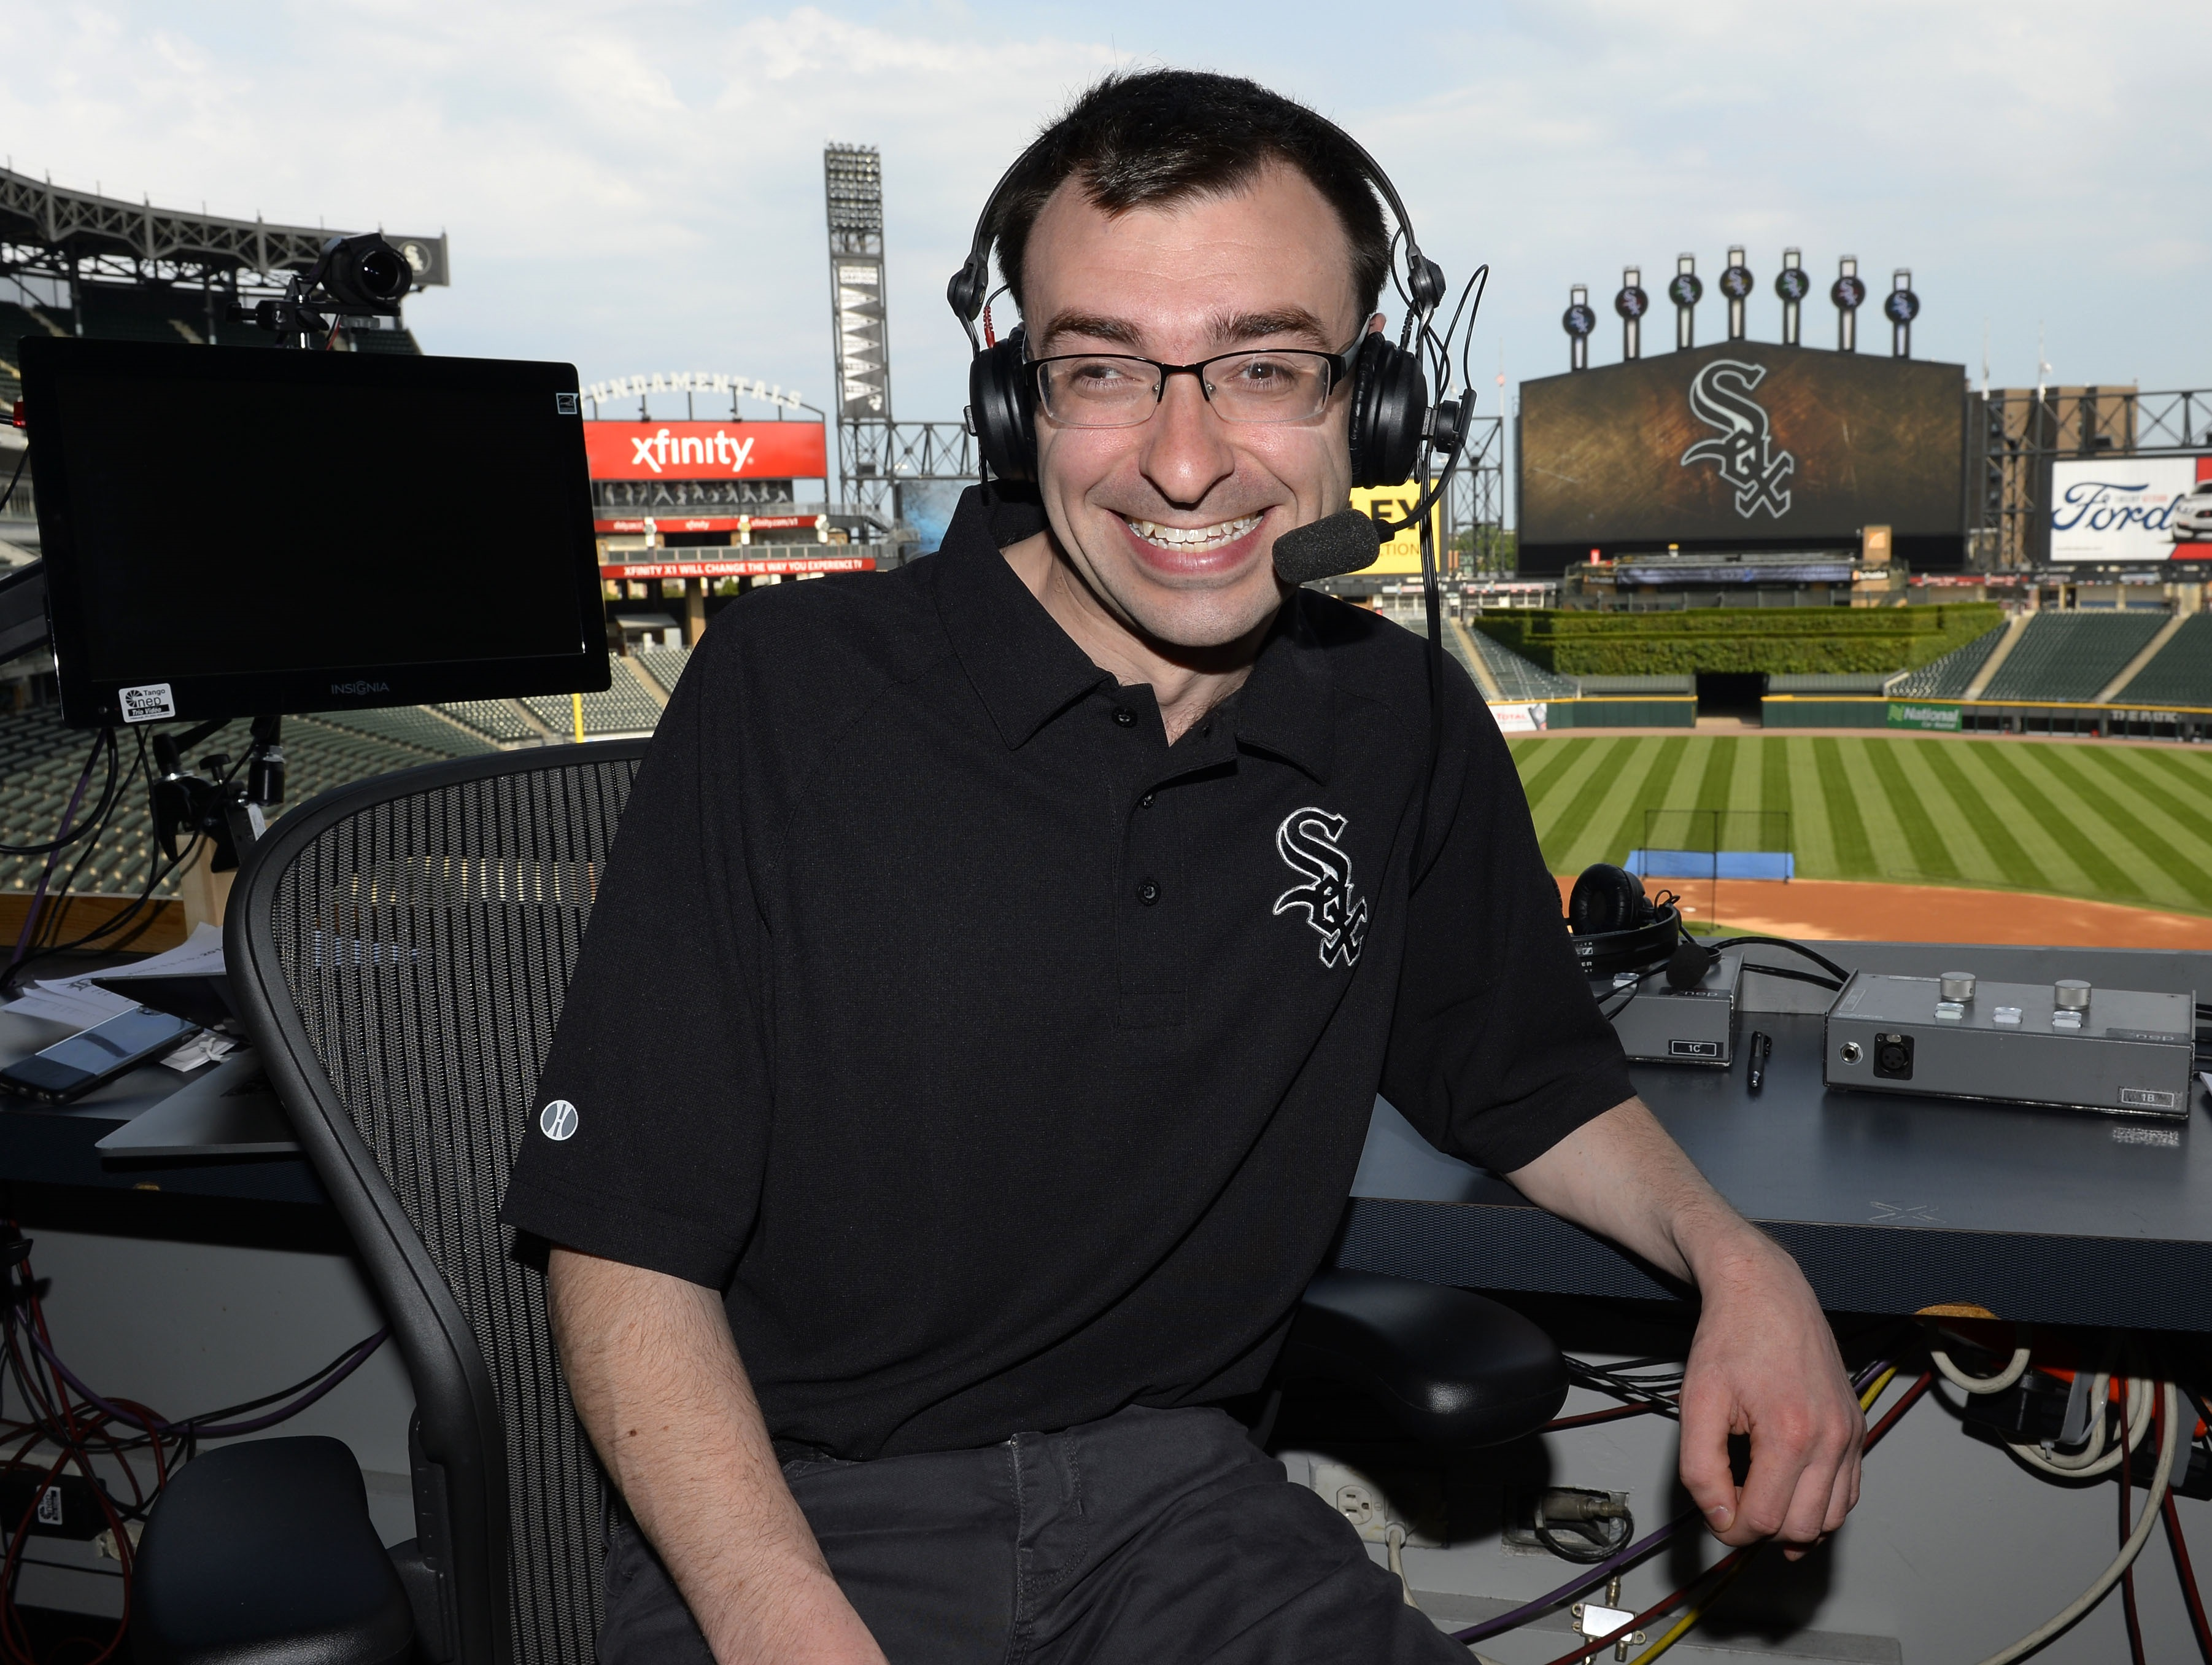 Jason Benetti in the broadcasting booth, Comiskey Park, Chicago. (Photo courtesy Ron Vesely)